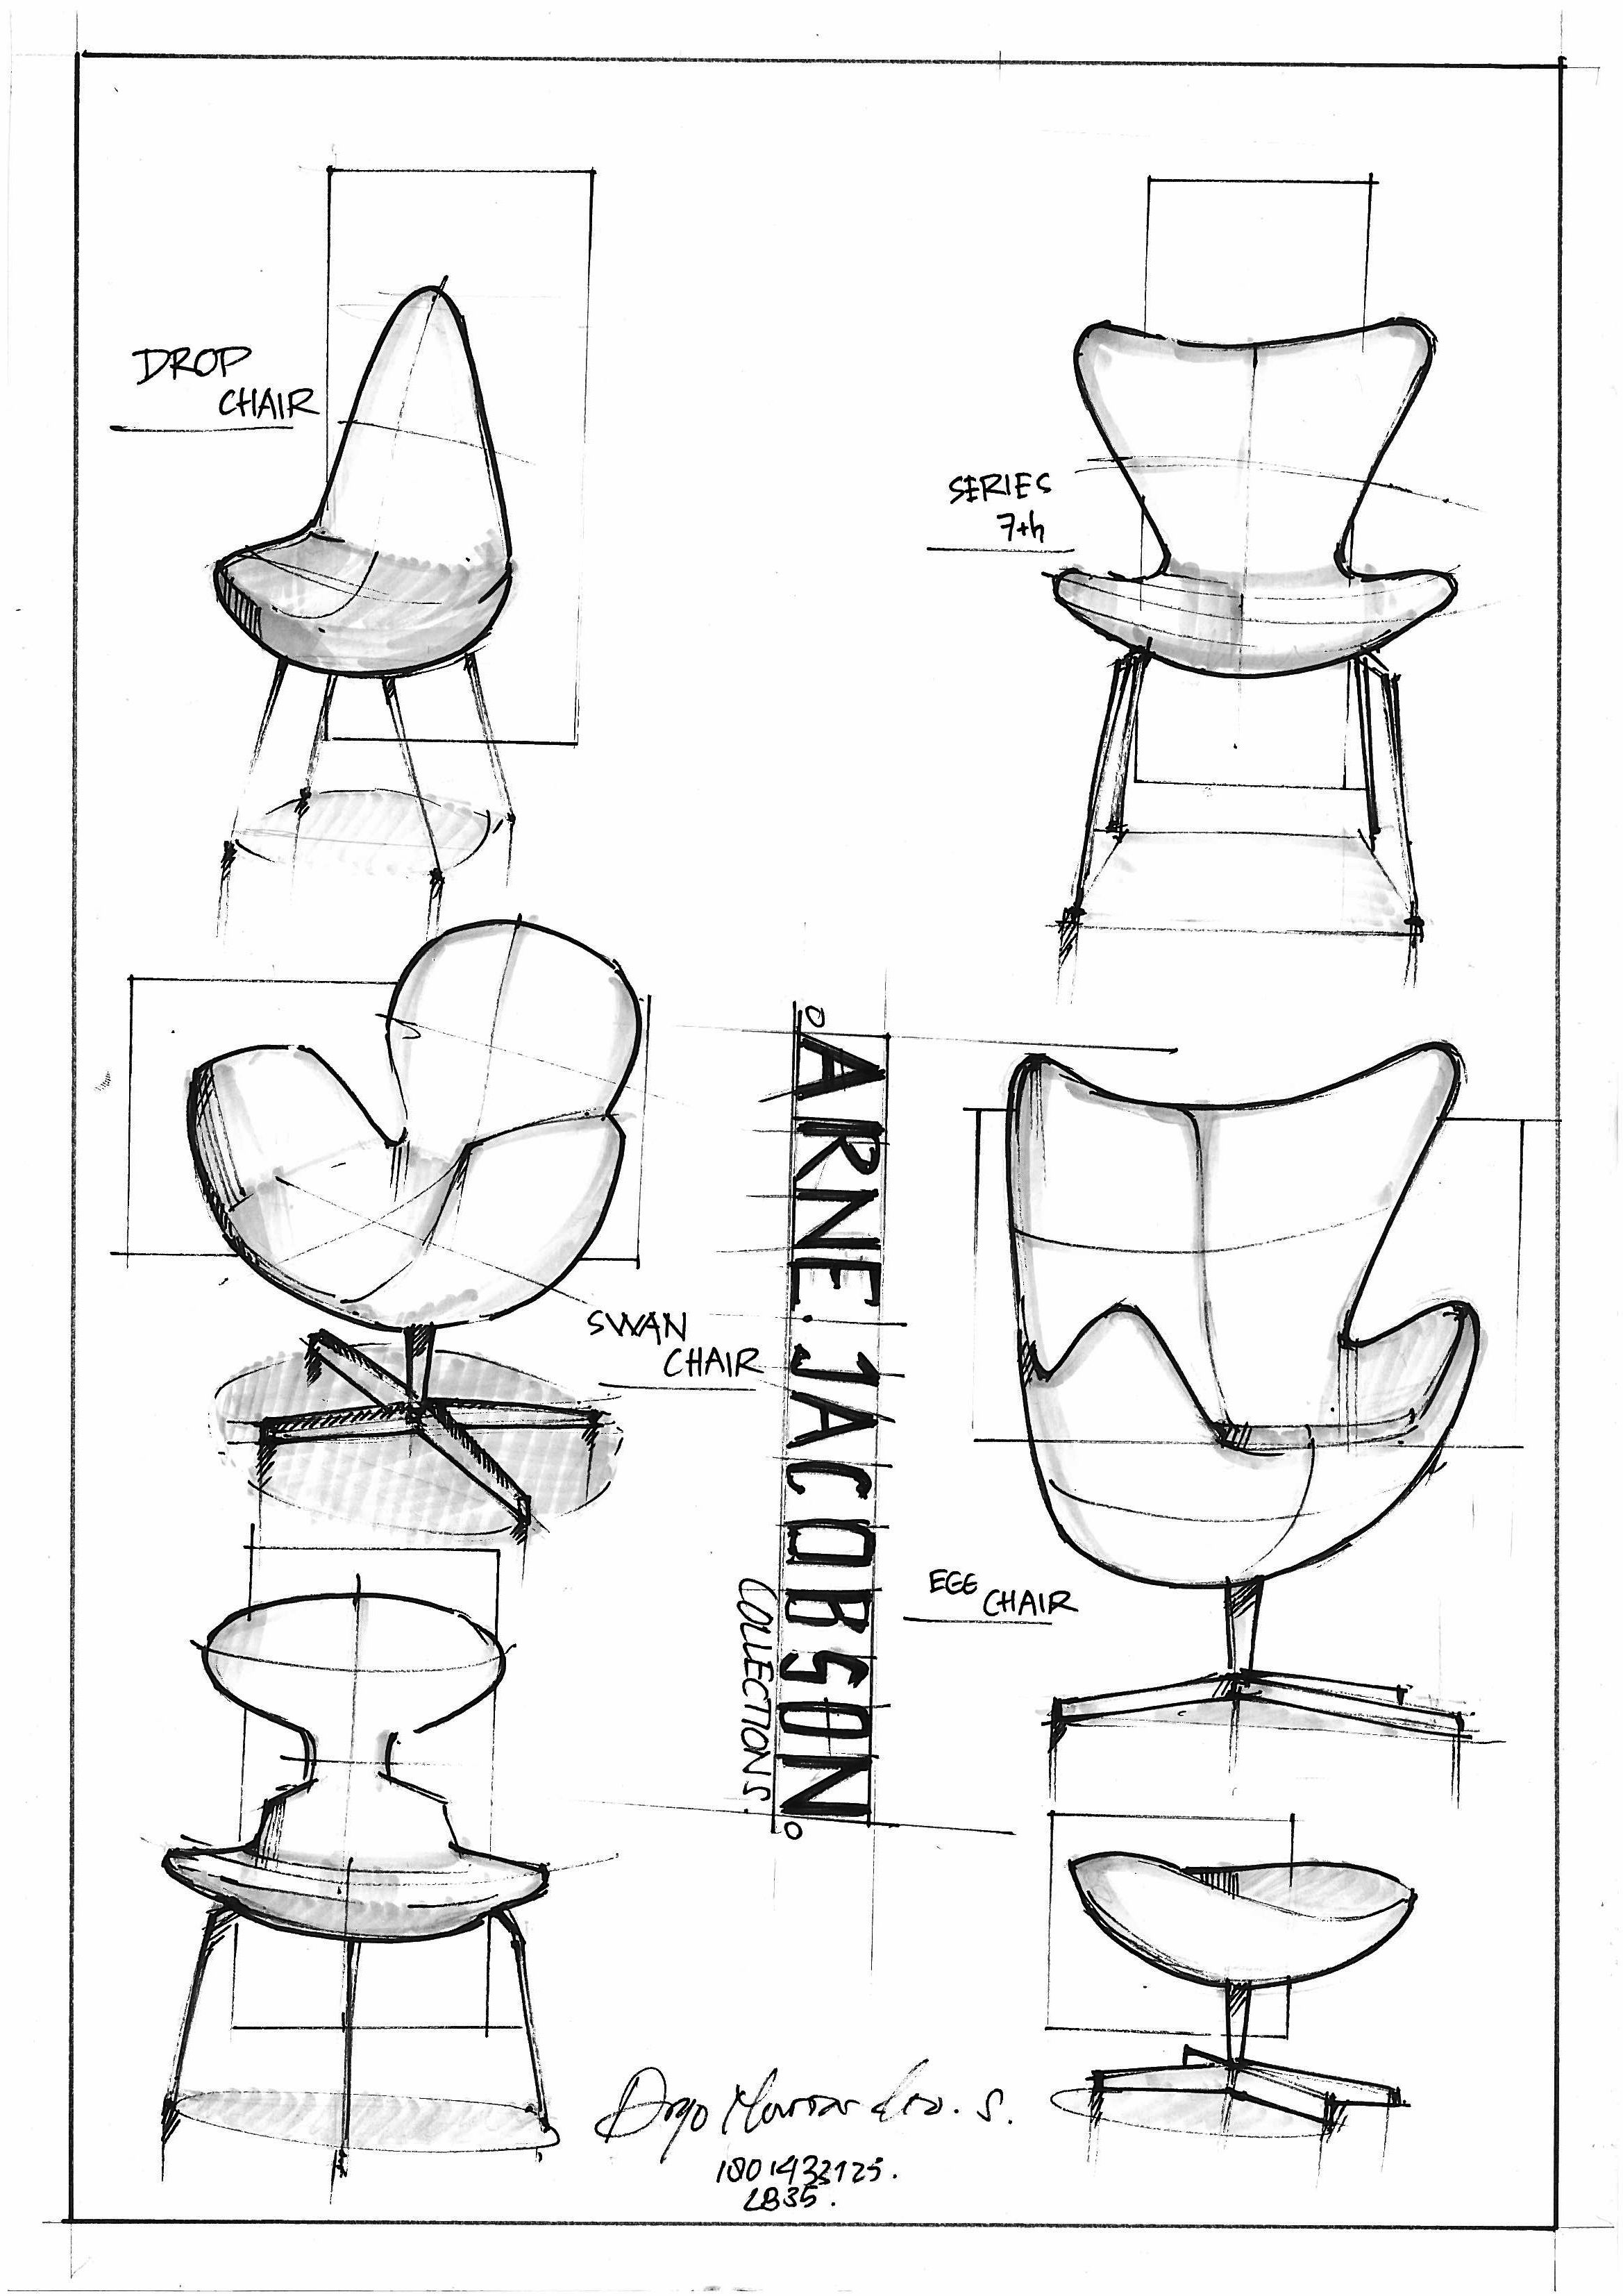 Chair Sketch freehand sketch arne jacobsen chair collections | my sketch